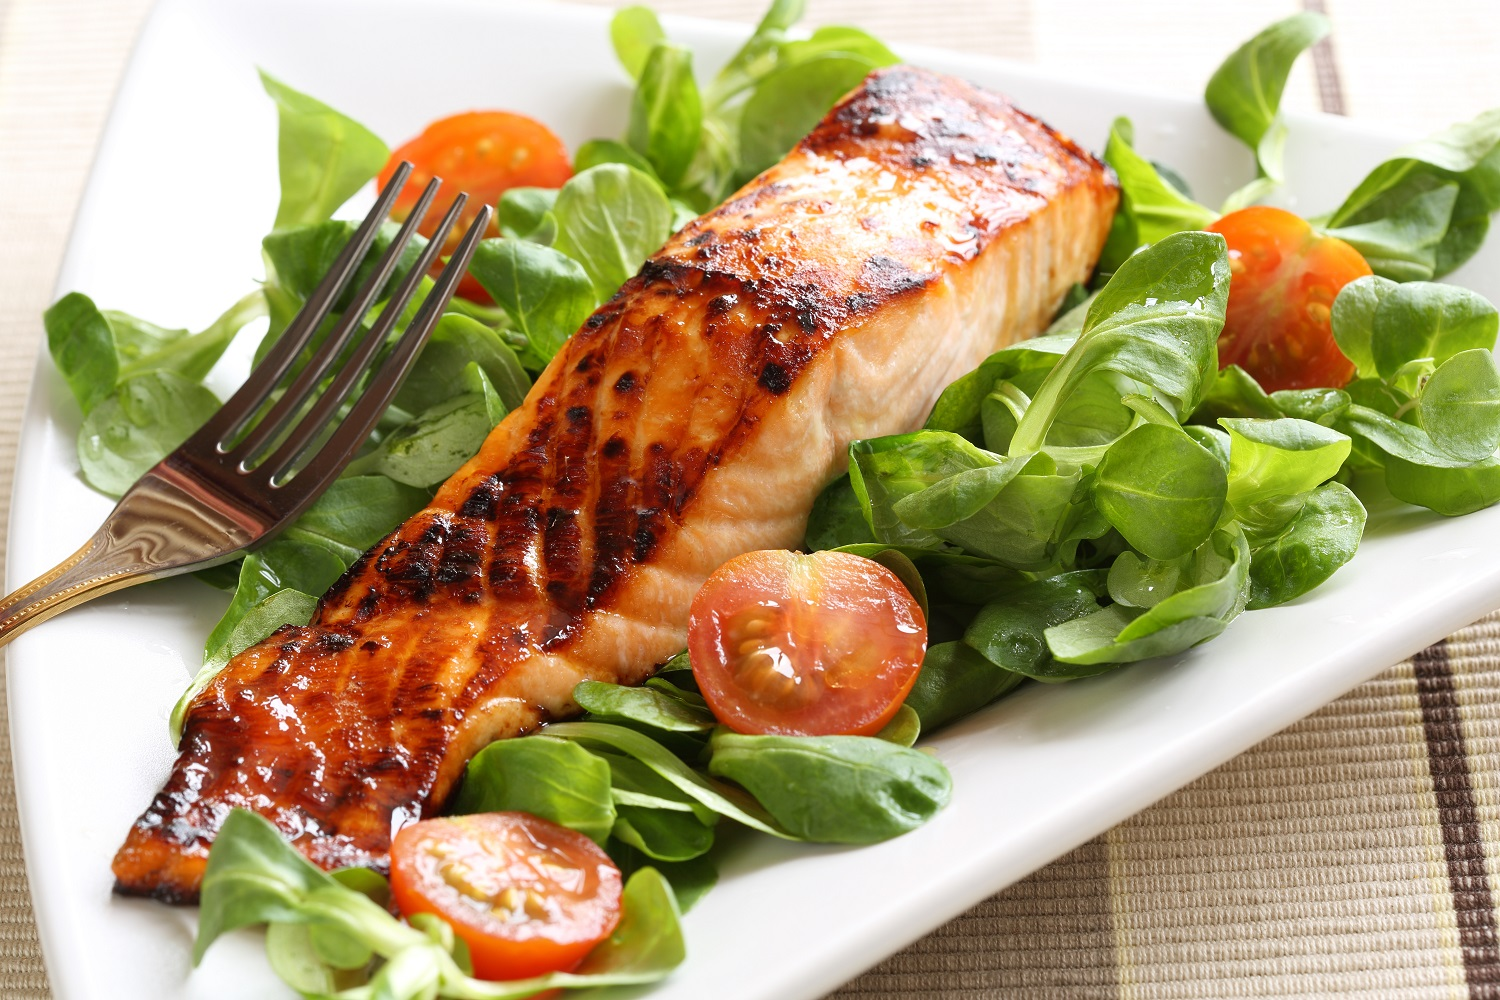 Grilled salmon with a honey glaze on a bed of lambs lettuce